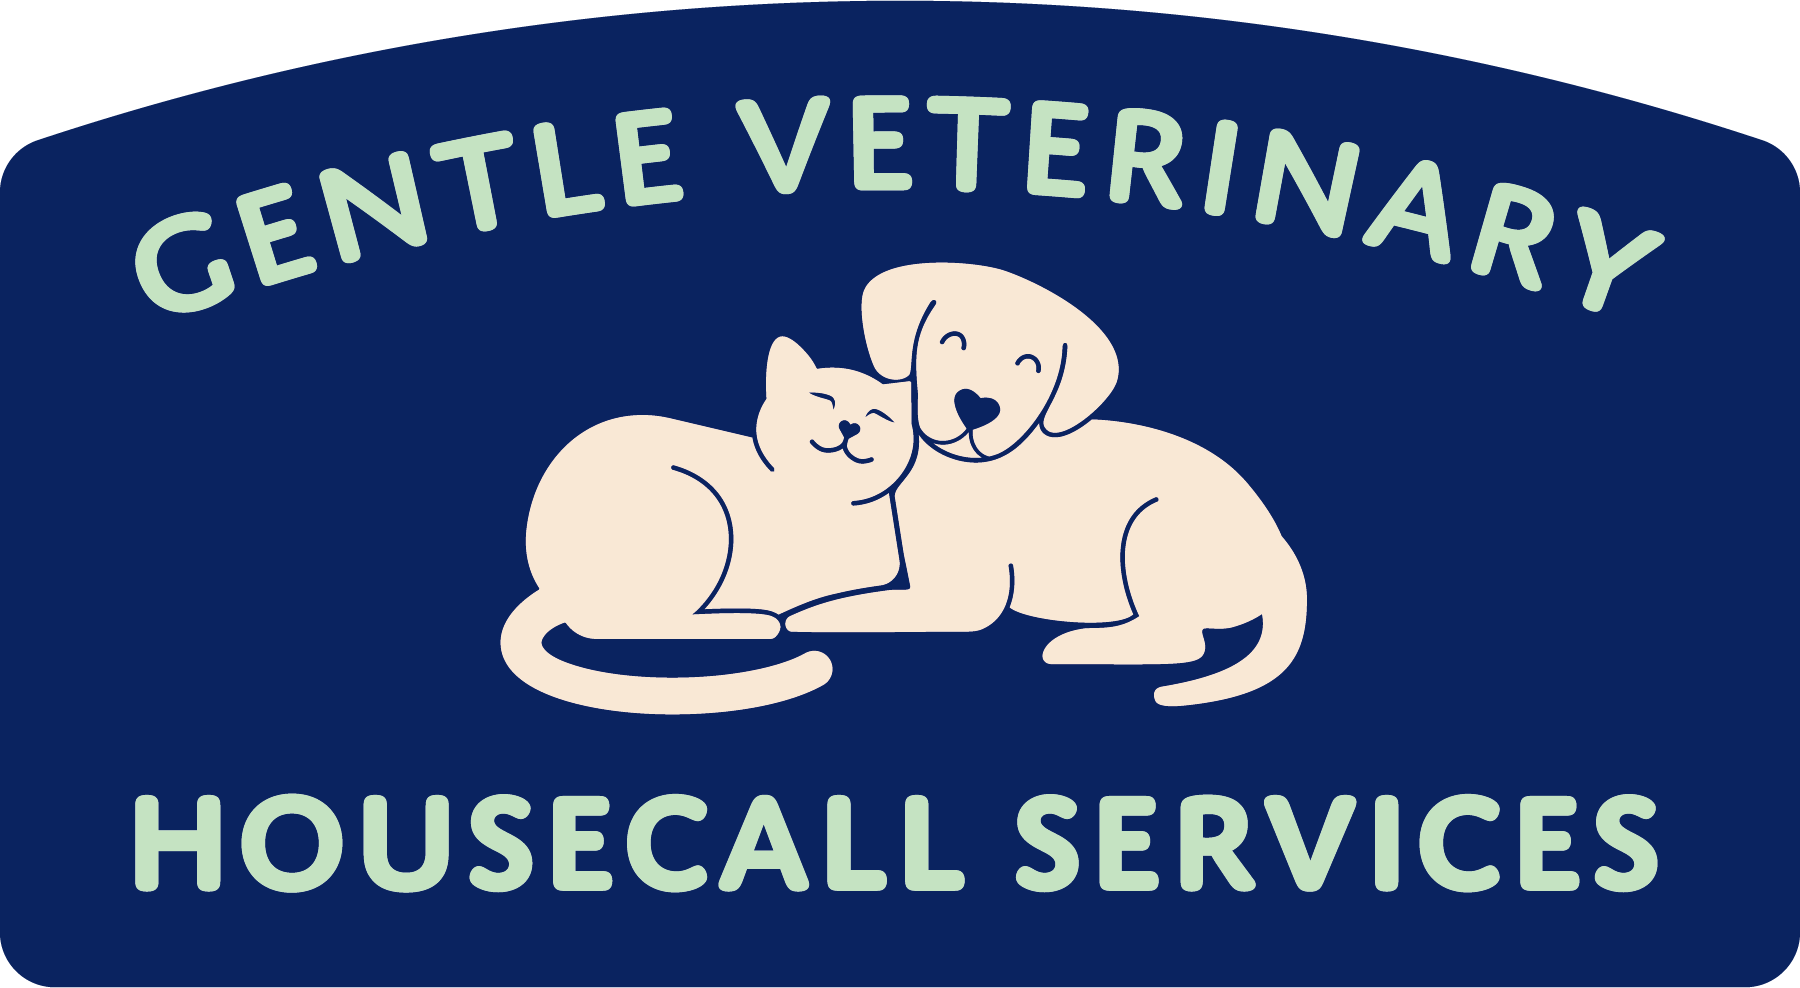 Gentle Veterinary Housecall Services, LLC